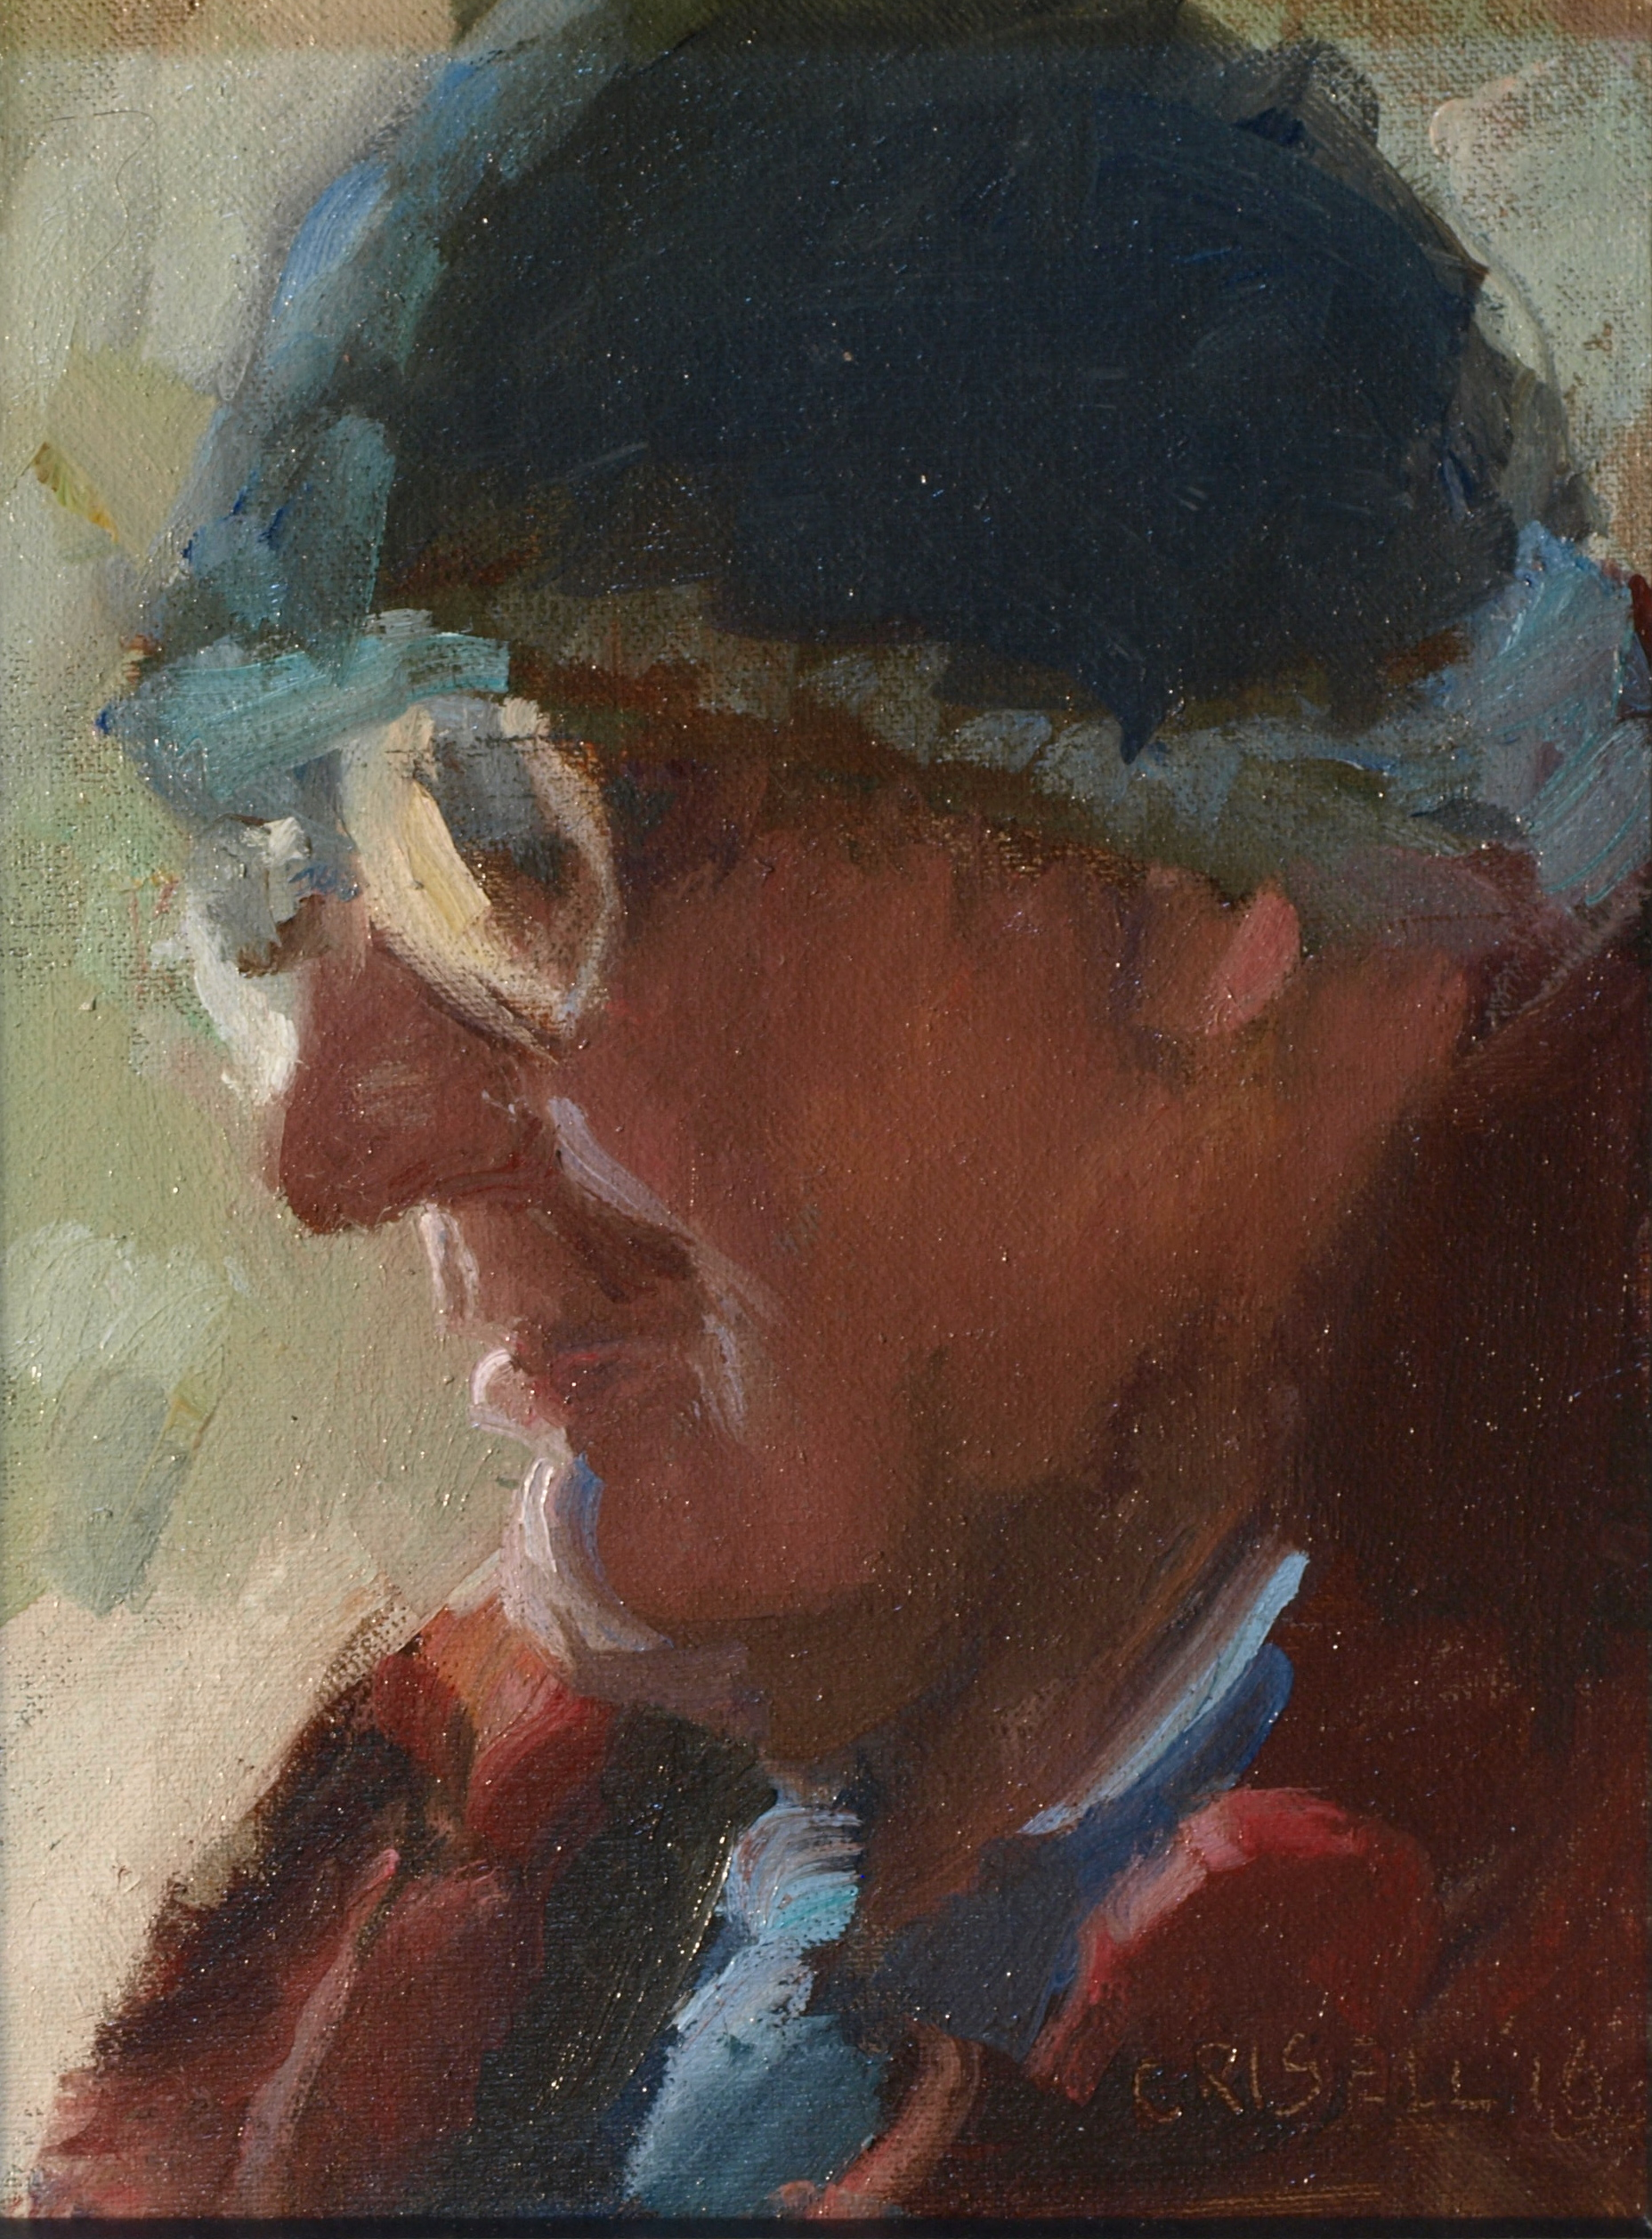 Knitted Hat, Oil on Canvas on Panel, 10 x 8 Inches, by Susan Grisell, $150